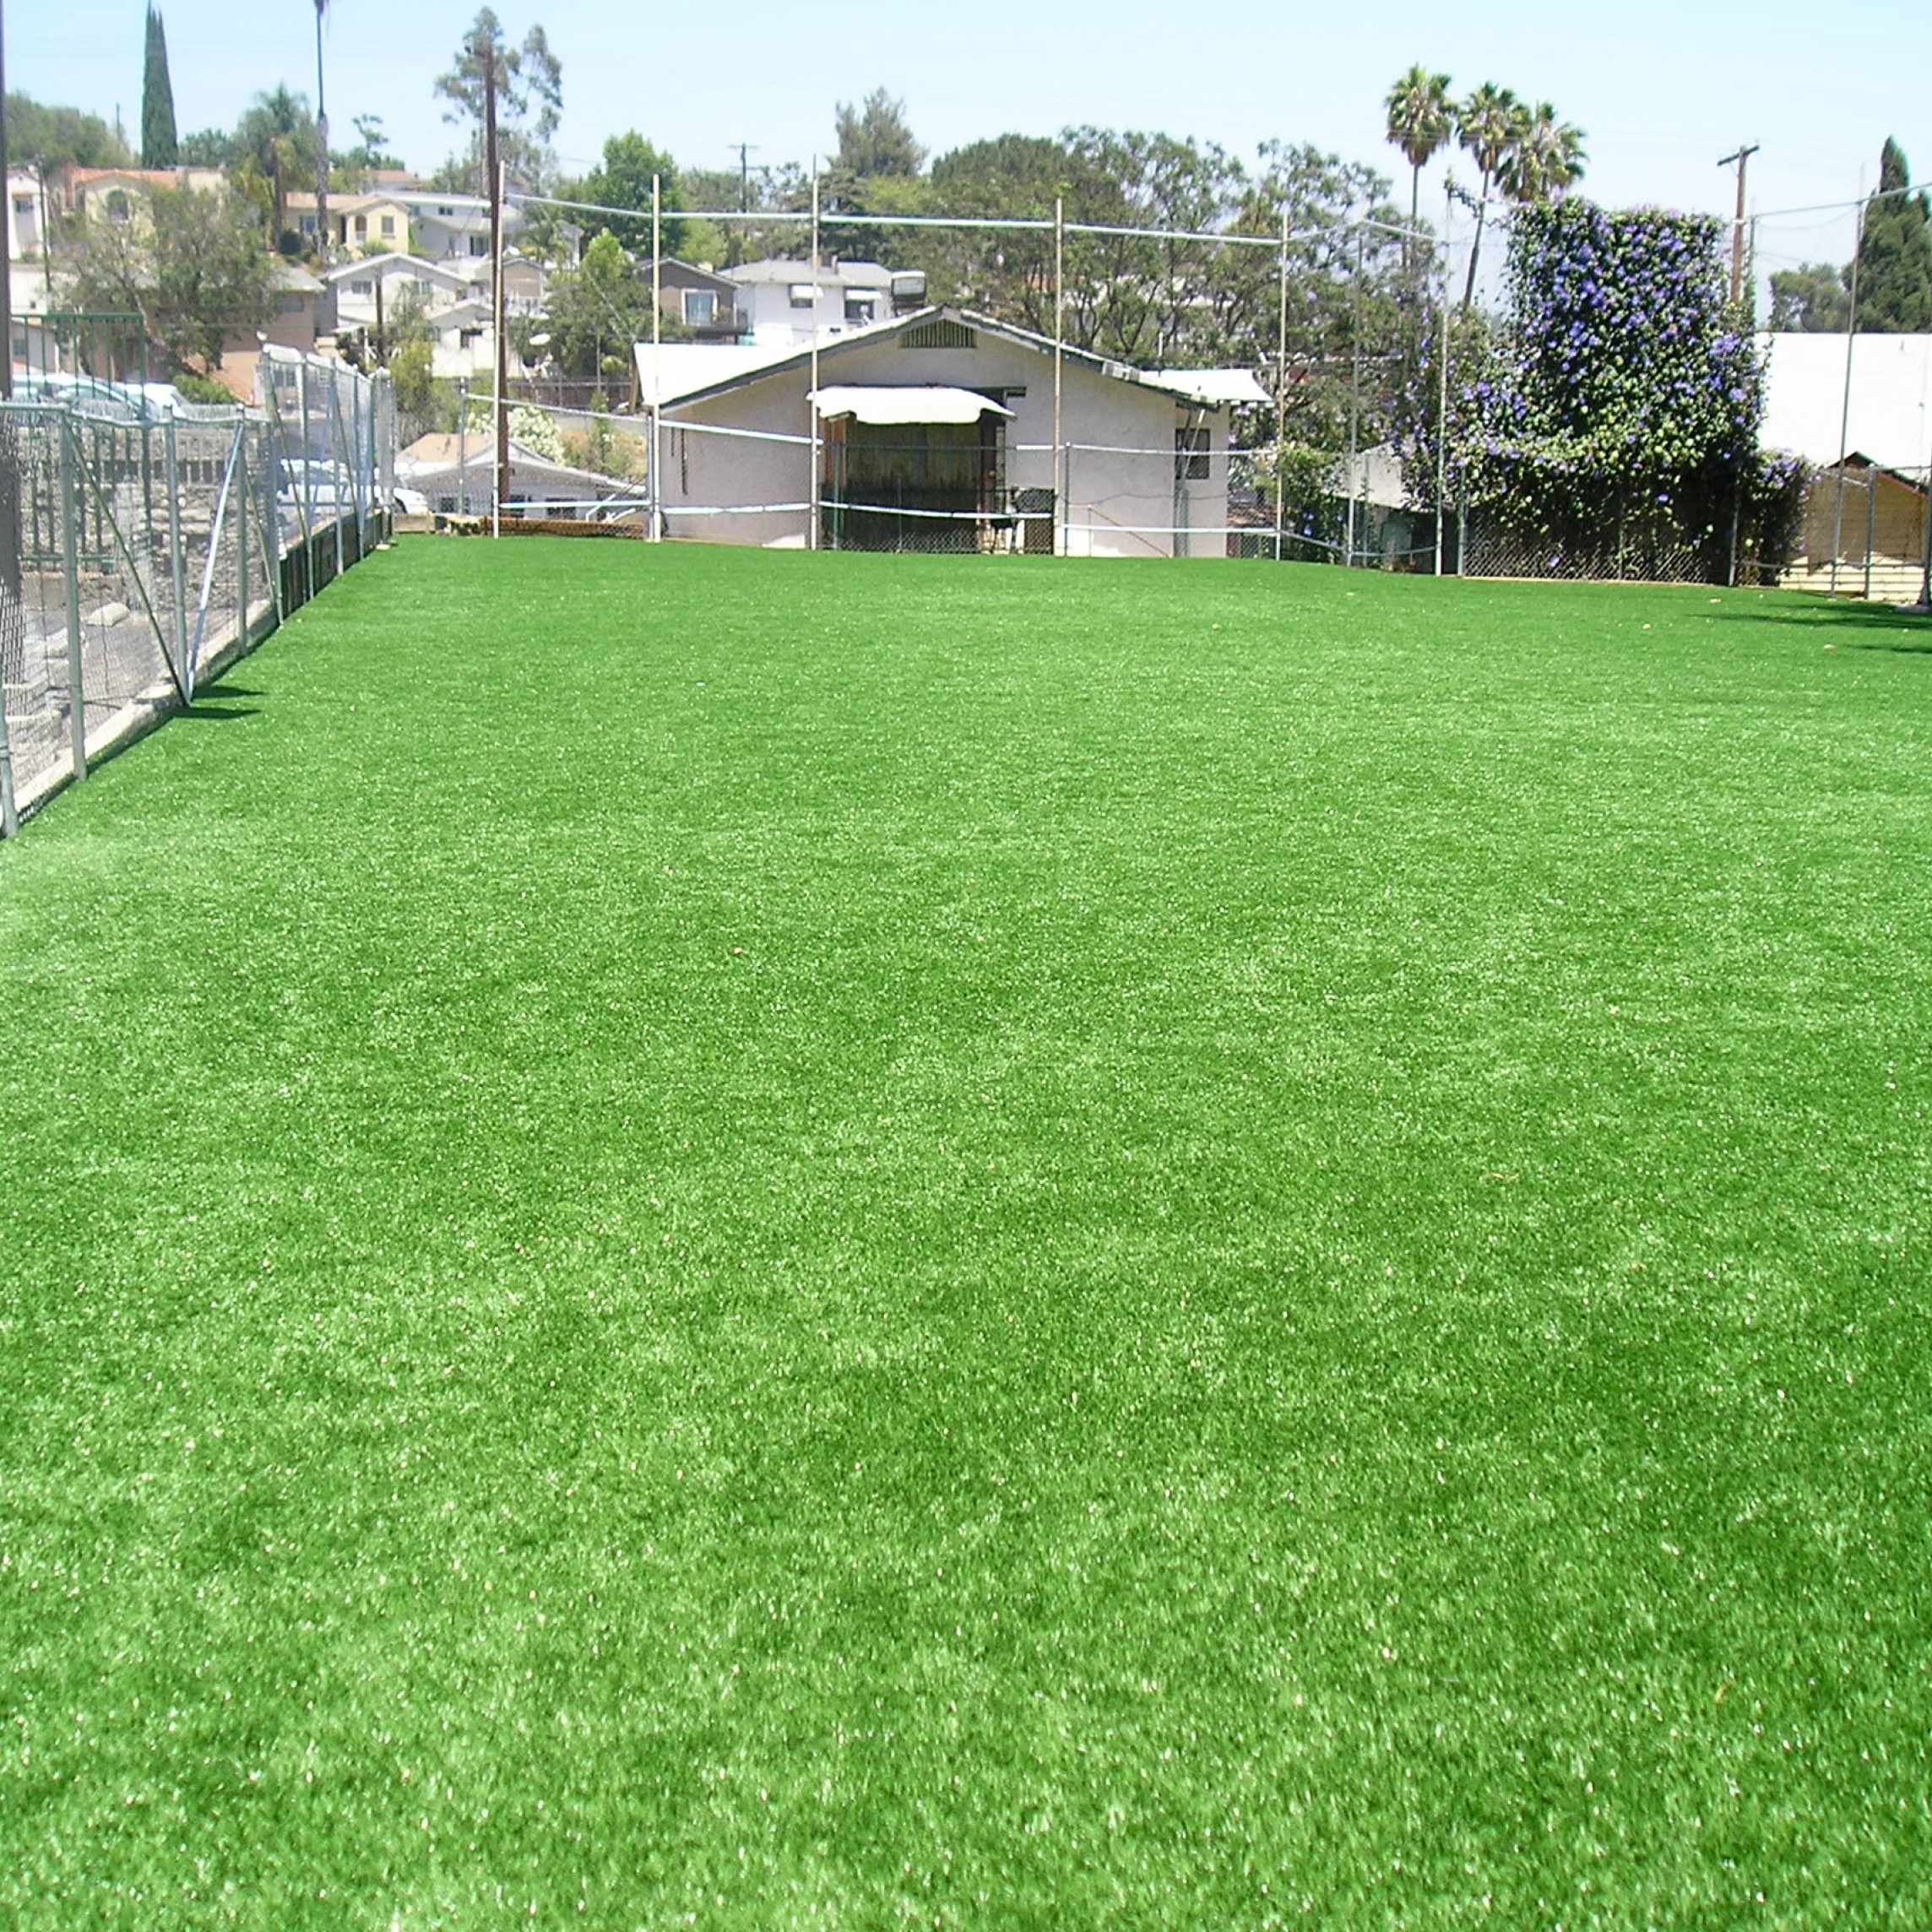 Full Recycle-91 fake green grass,green grass carpet,artificial turf,synthetic turf,artificial turf installation,how to install artificial turf,used artificial turf,artificial turf,synthetic turf,artificial turf installation,how to install artificial turf,used artificial turf,pet friendly artificial grass